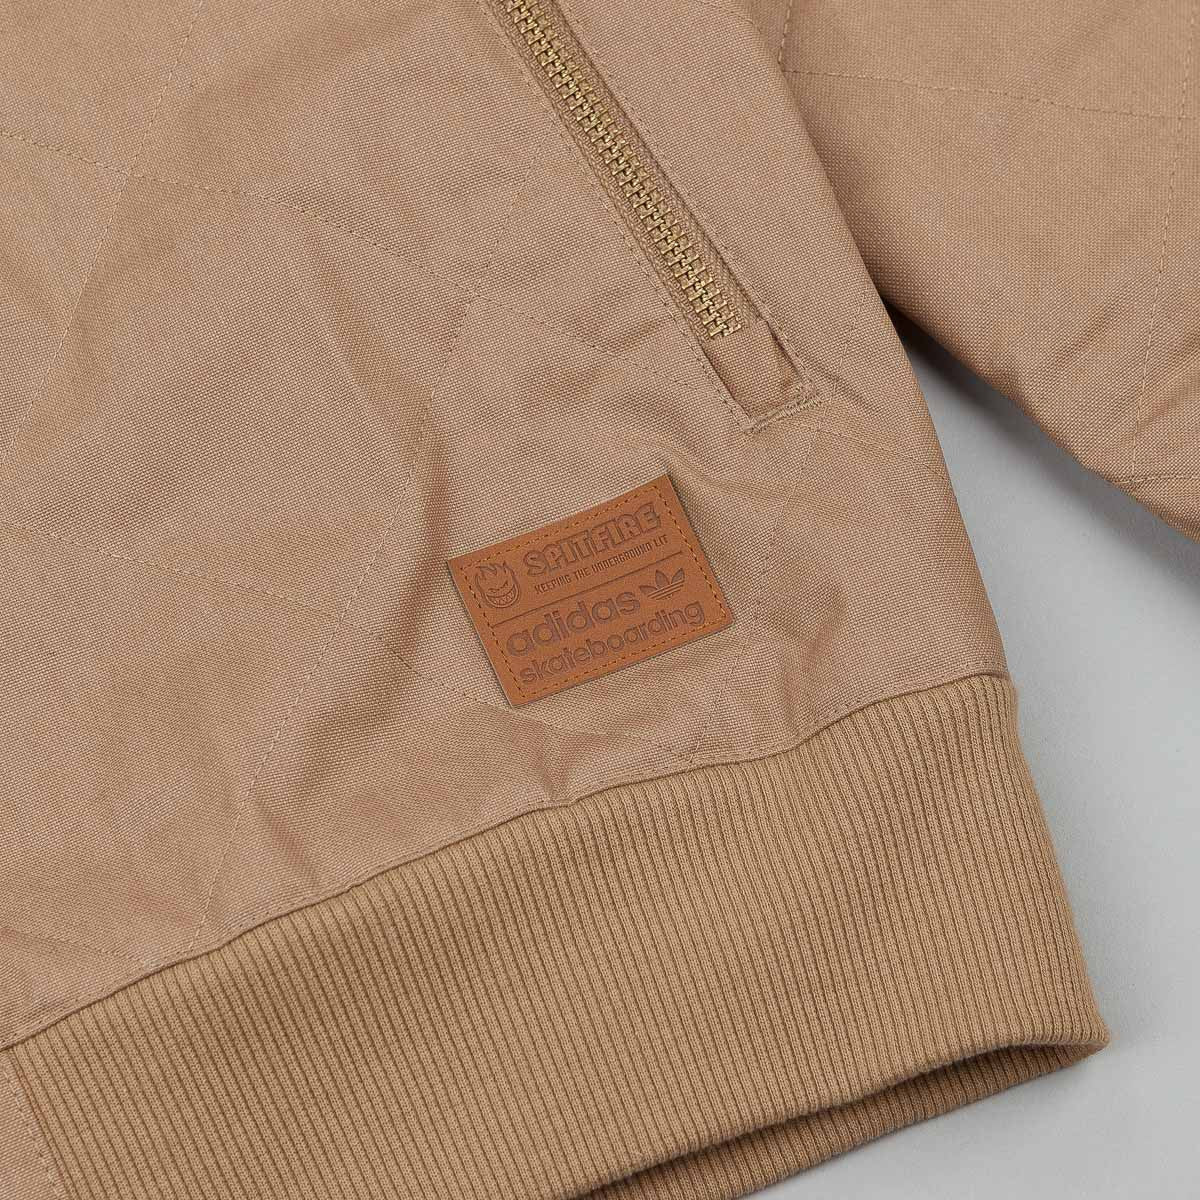 Adidas X Spitfire Silas Quilted Jacket - Cardboard